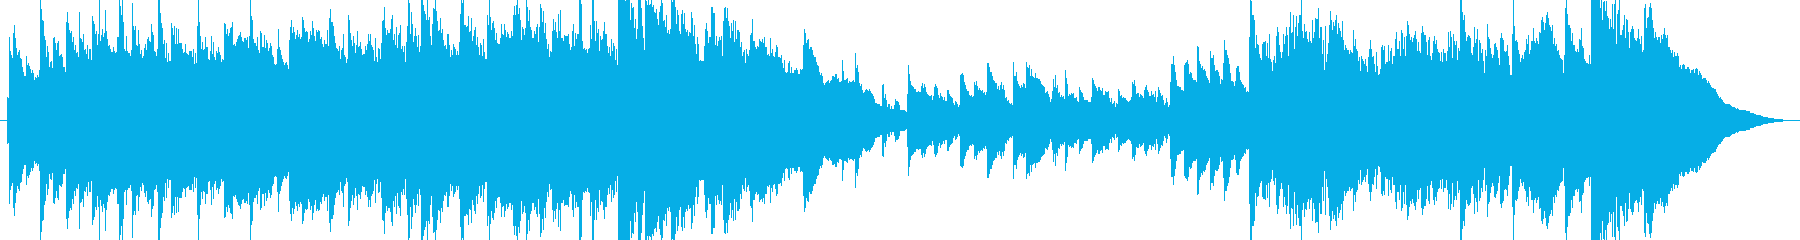 A beautiful piano's reproduced waveform